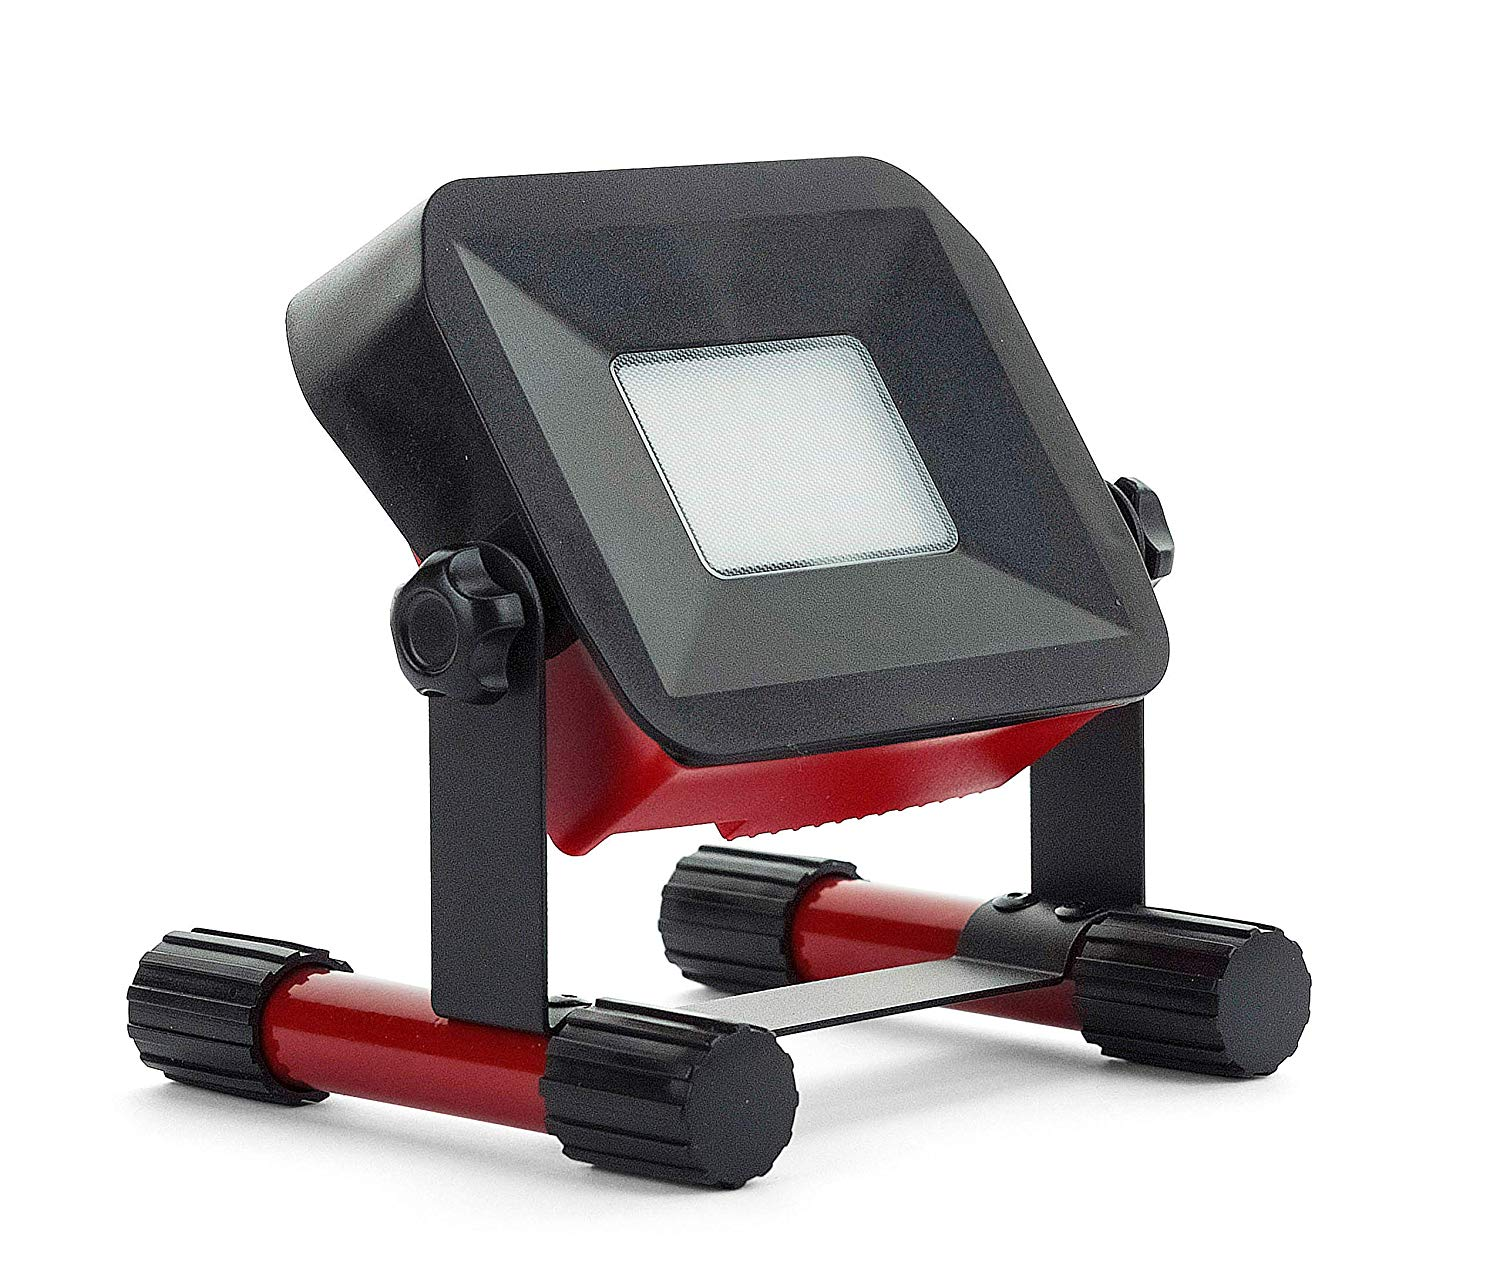 Luceco - Slimline Portable 10W Led Worklight - Usb Rechargeable & Built-In Powerbank